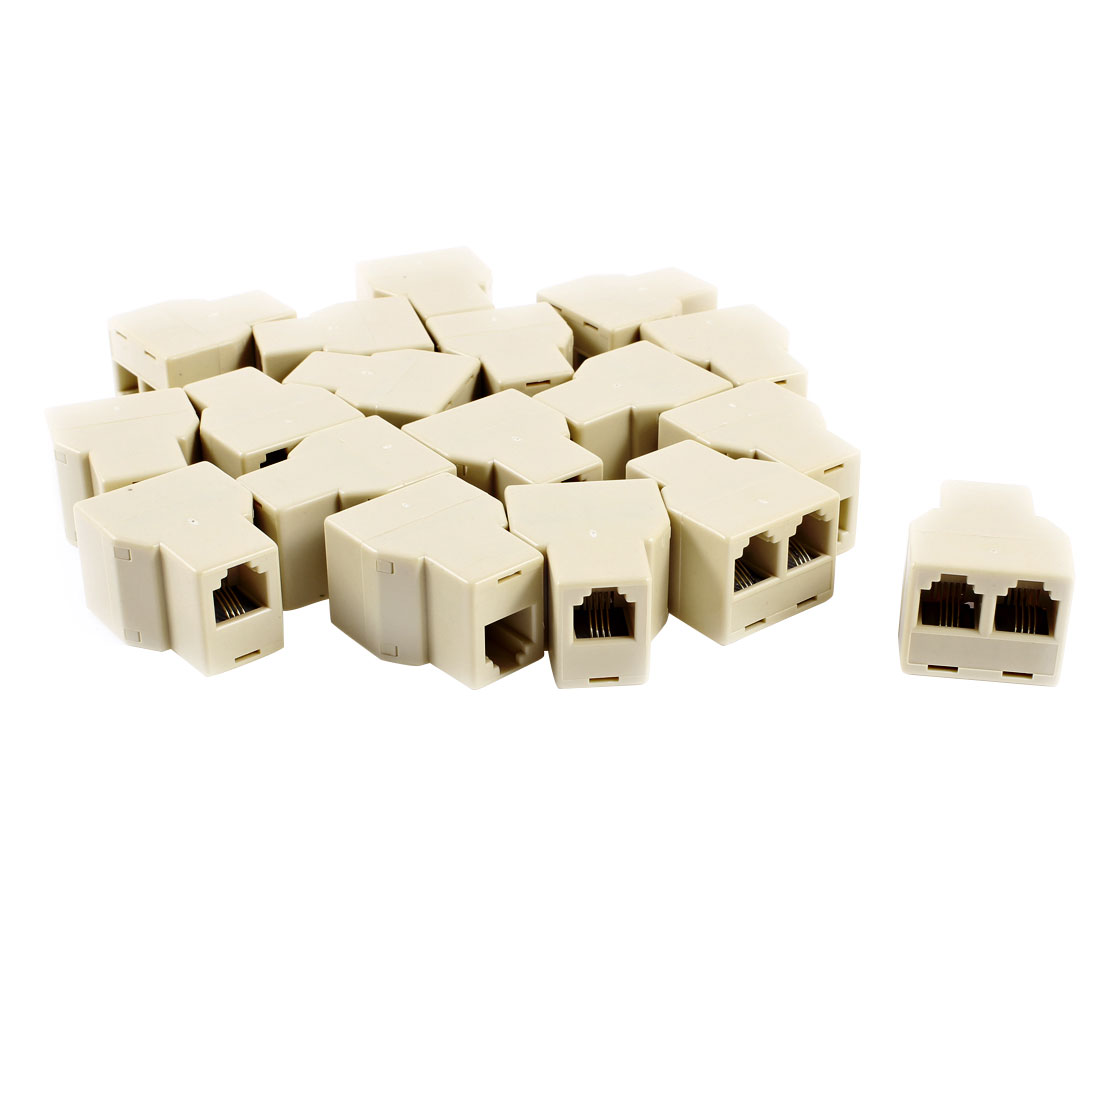 20 Pcs RJ11 F-2F F/2F Telephone Modular Splitter Joiner Connectors Beige